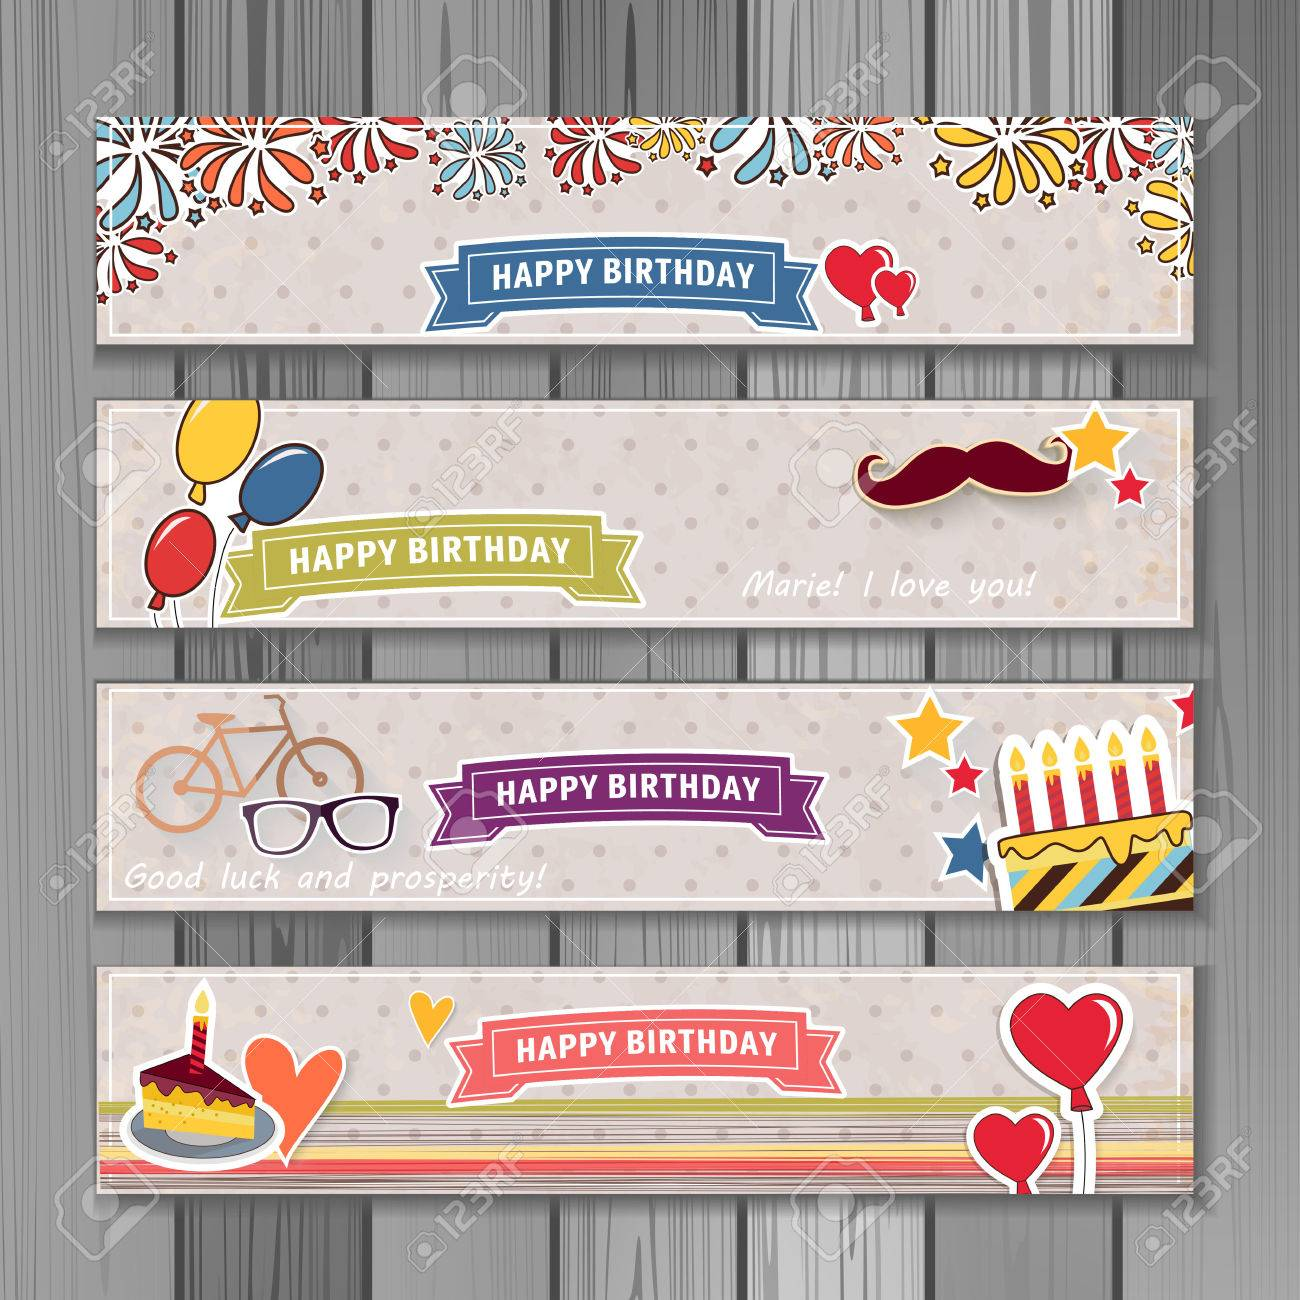 Banner happy birthday illustration. You can use it for events, invitation, banner, brochure, brochures. Illustration composed of cake, balloons, ribbons, fireworks, heart. Cartoon style - 53171178